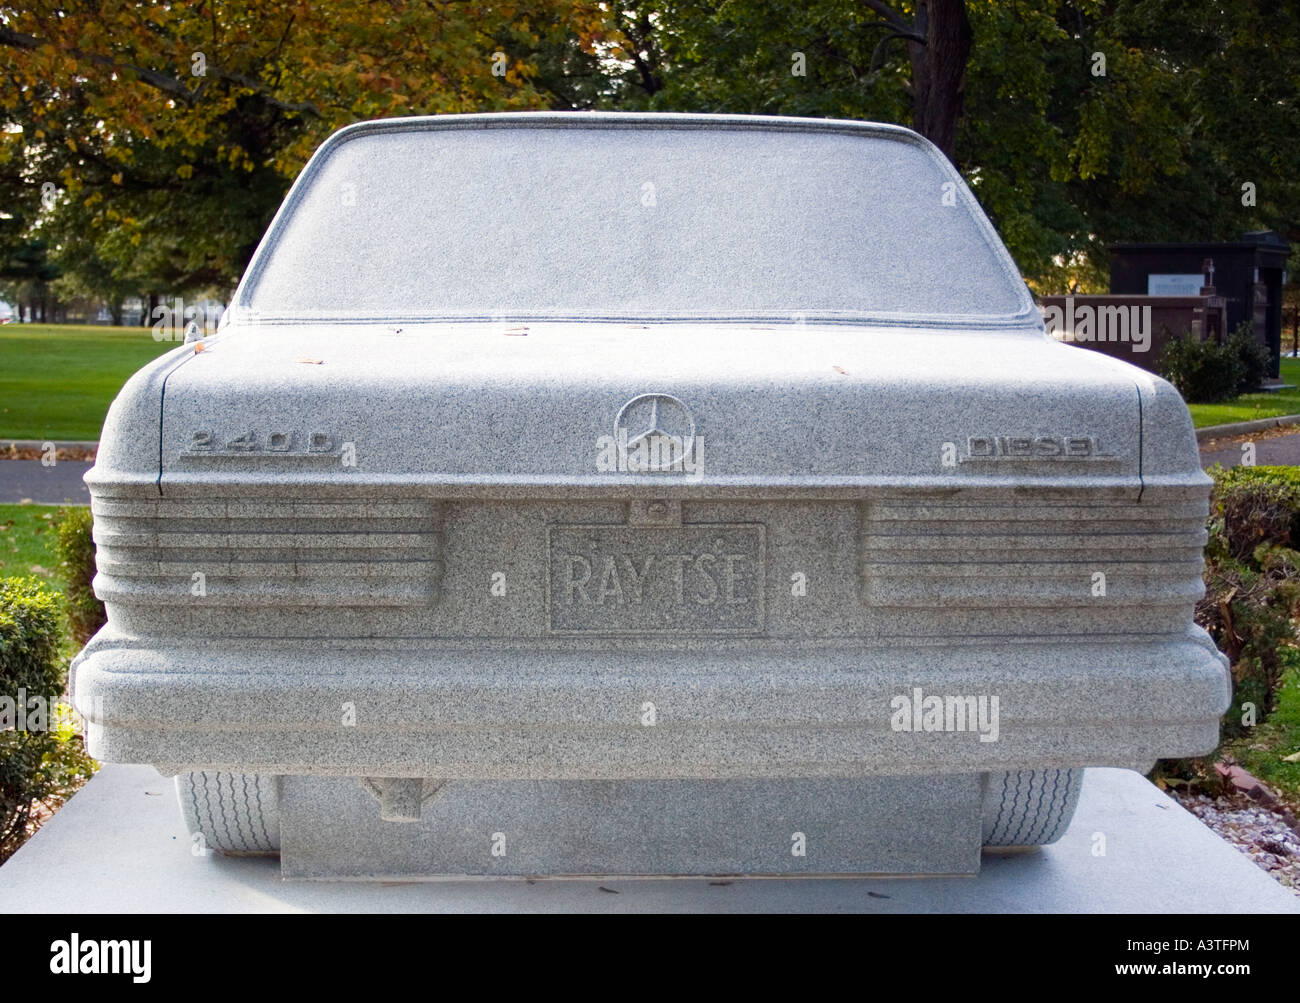 Mercedes Benz gravestone at Rosehill Cemetery in Linden New Jersey - Stock Image